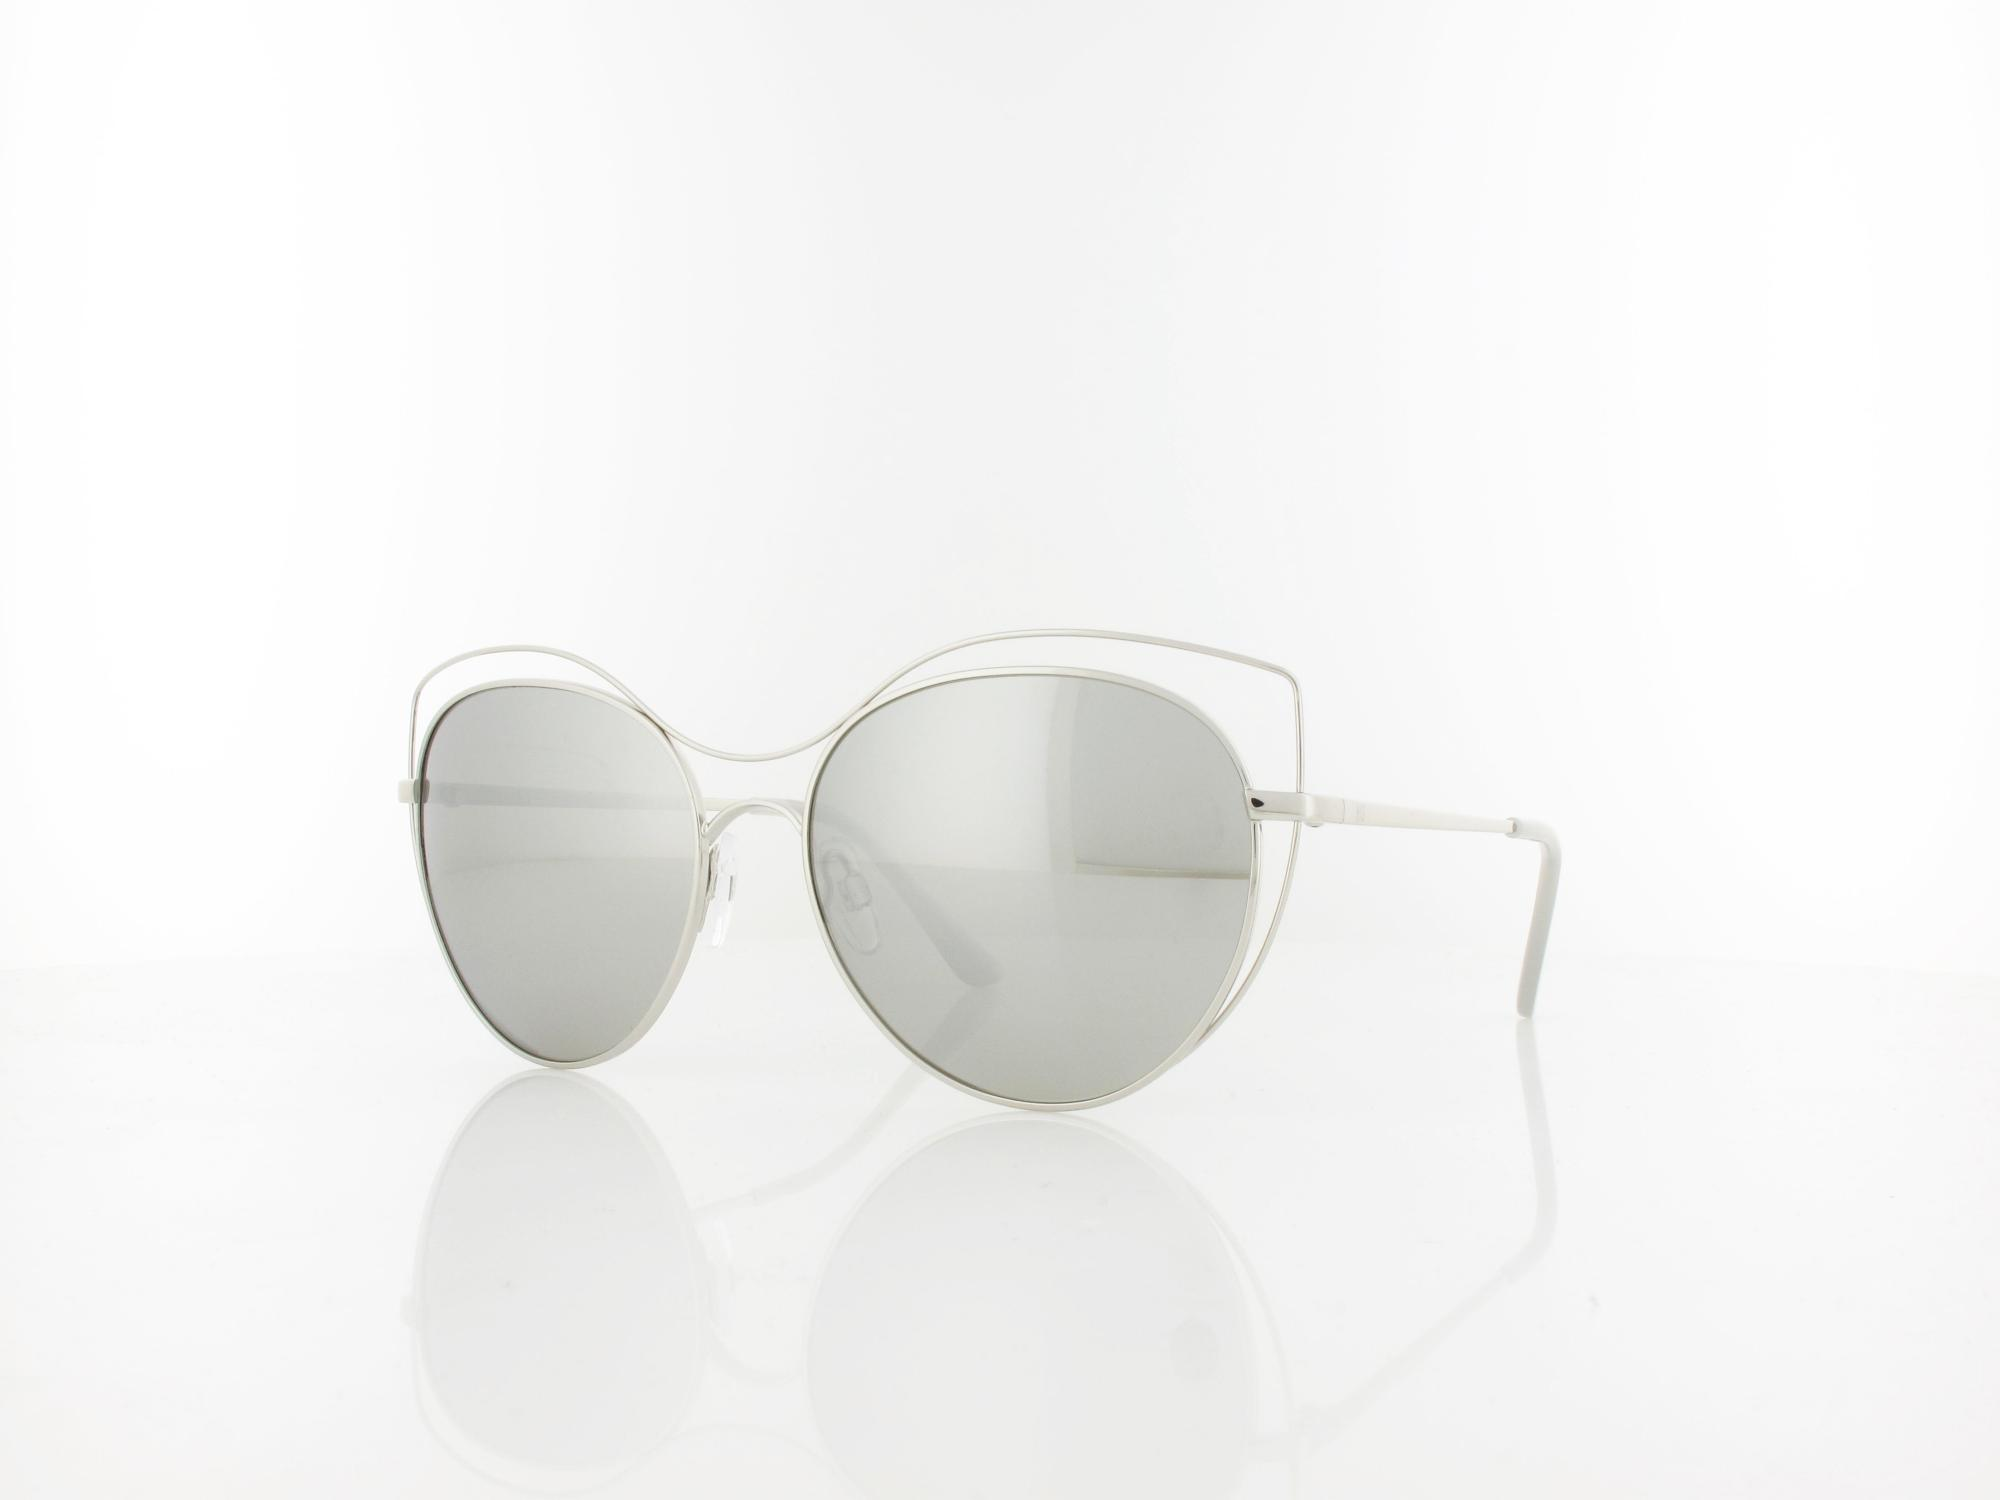 HIS polarized | HPS94122-3 56 | silver / smoke with silver flash polarized